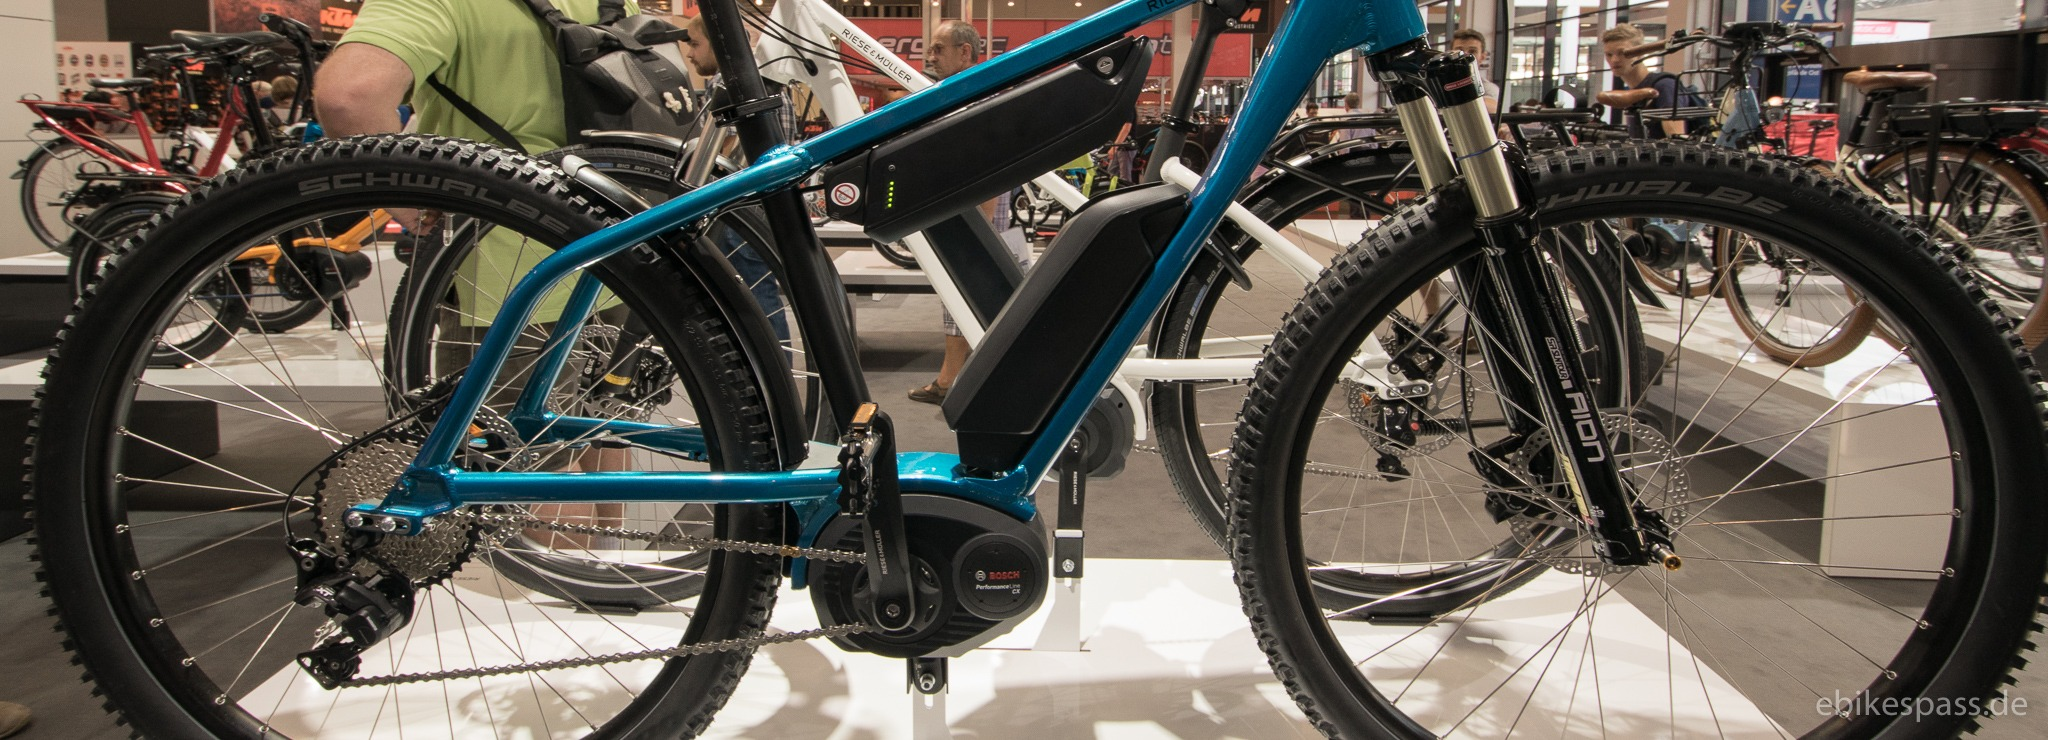 E-Bike von Riese & Müller - Charger